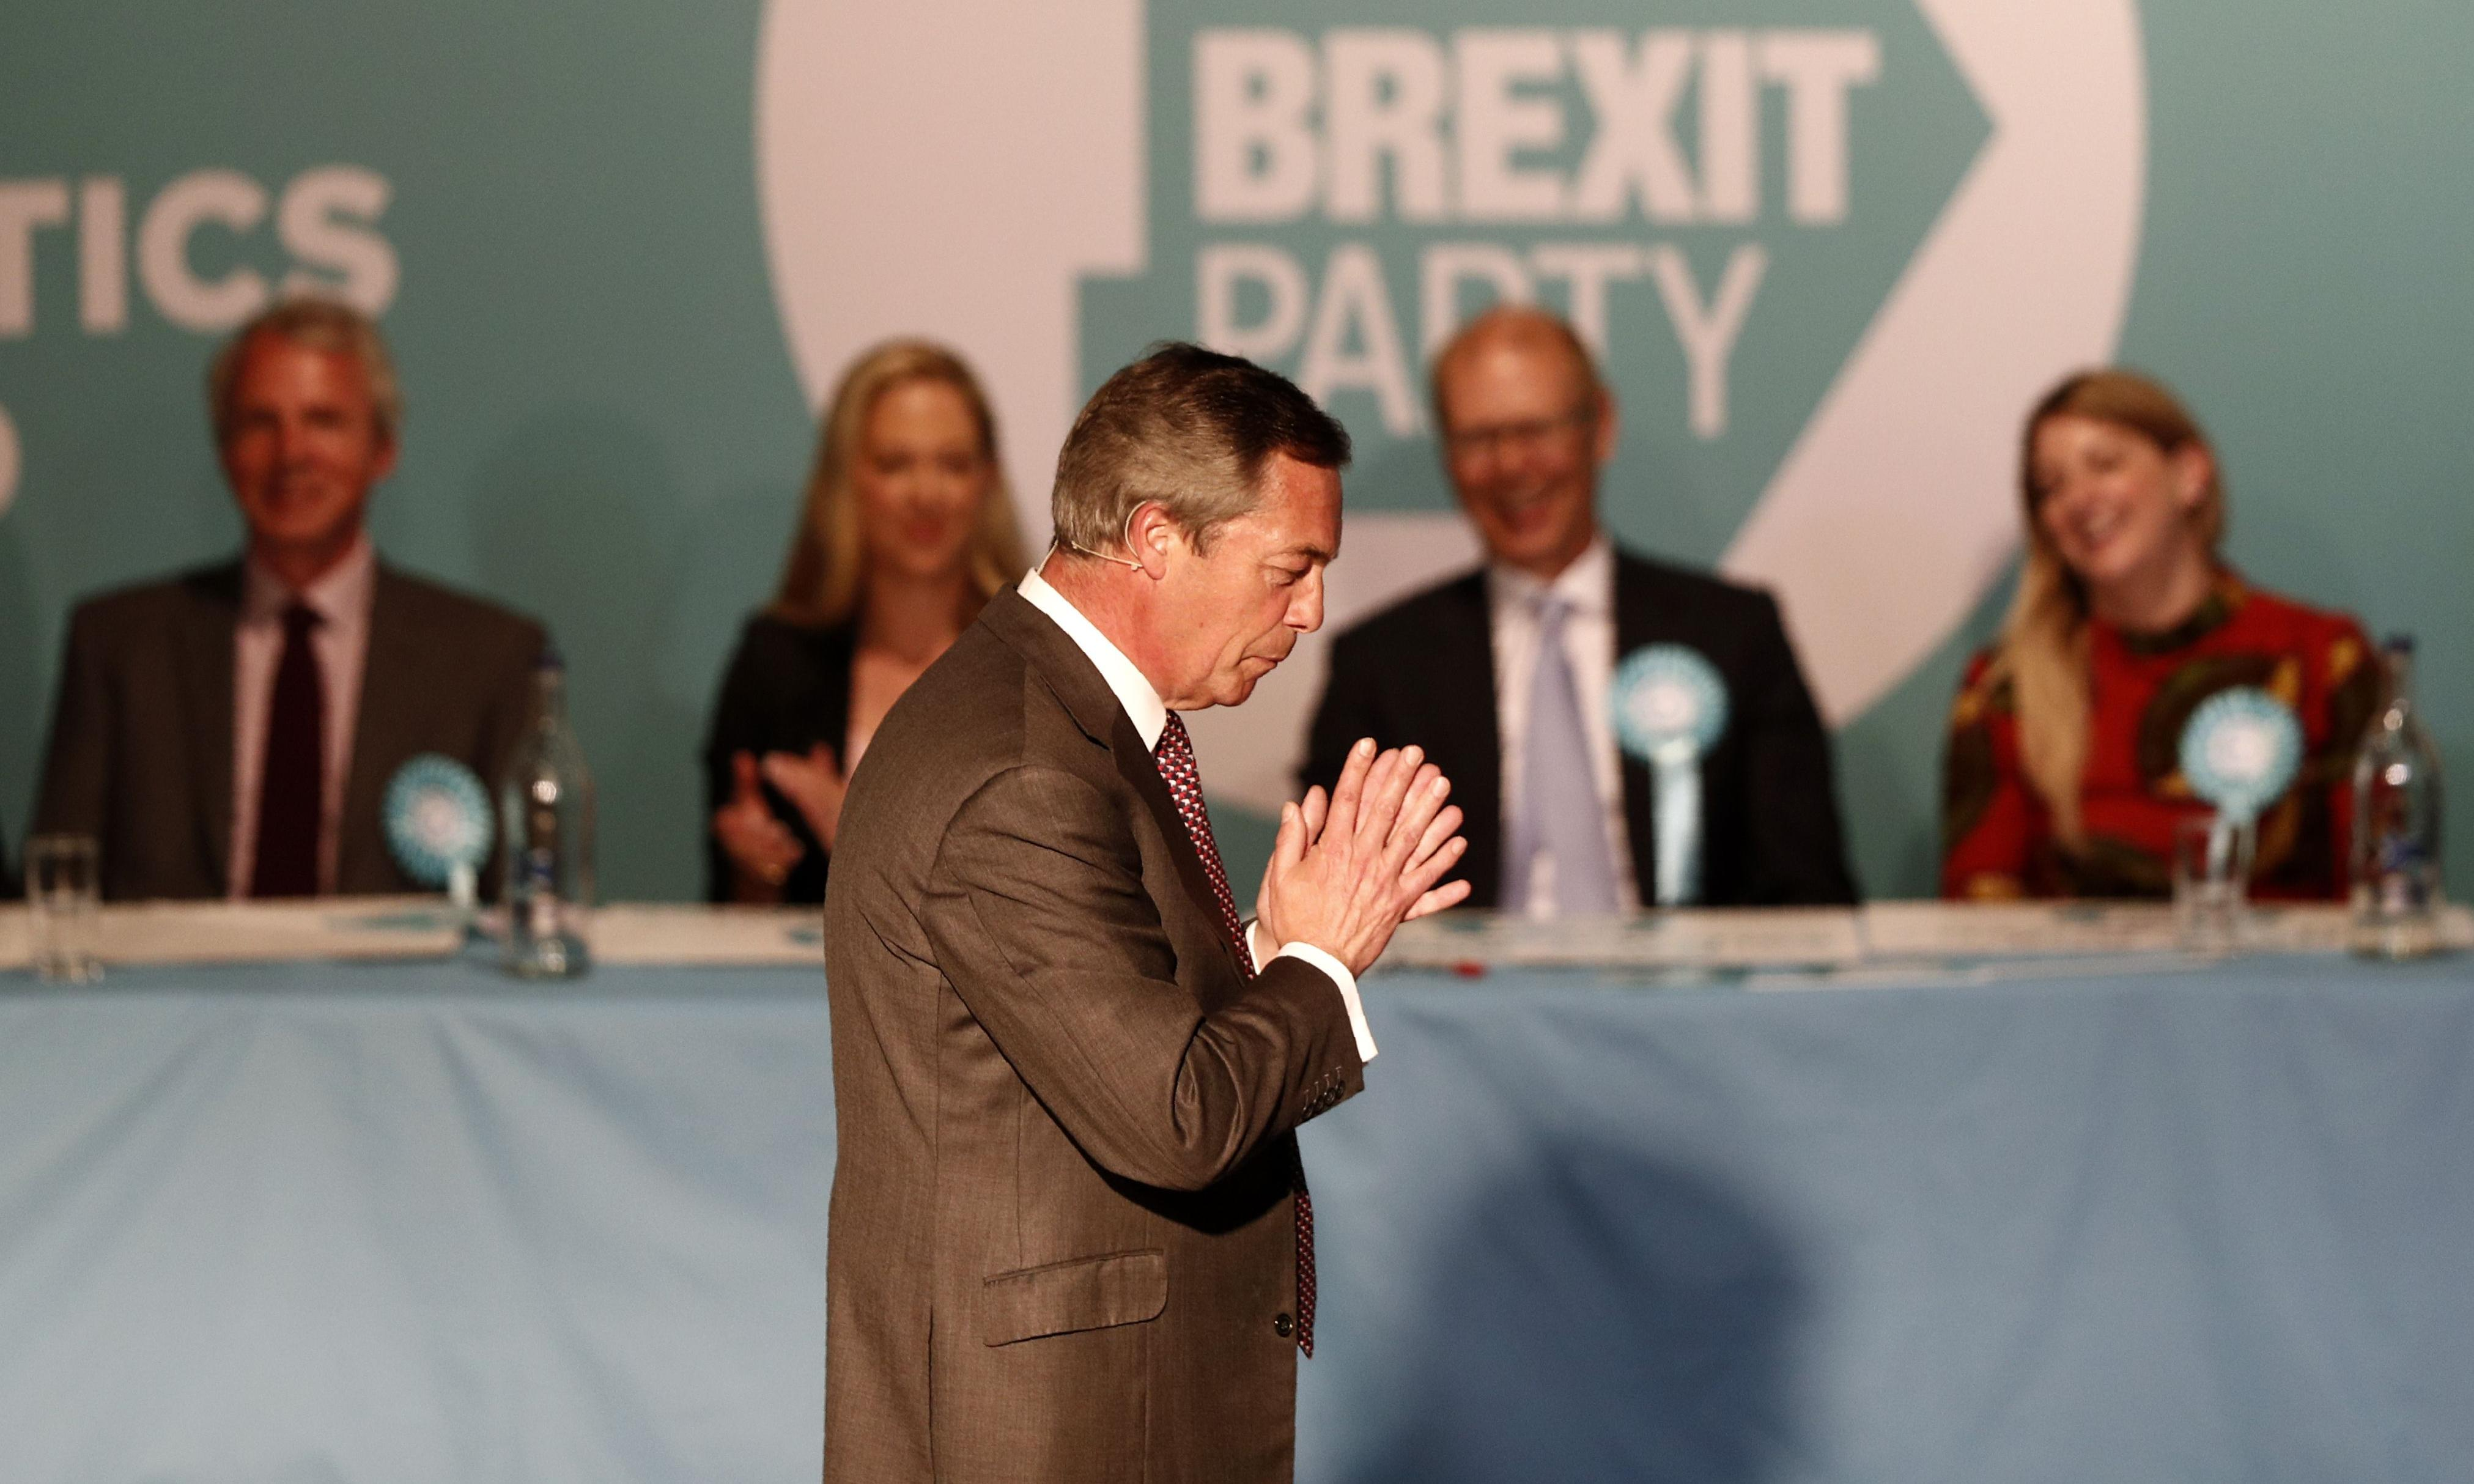 Brexit party's funding must be investigated, says Gordon Brown